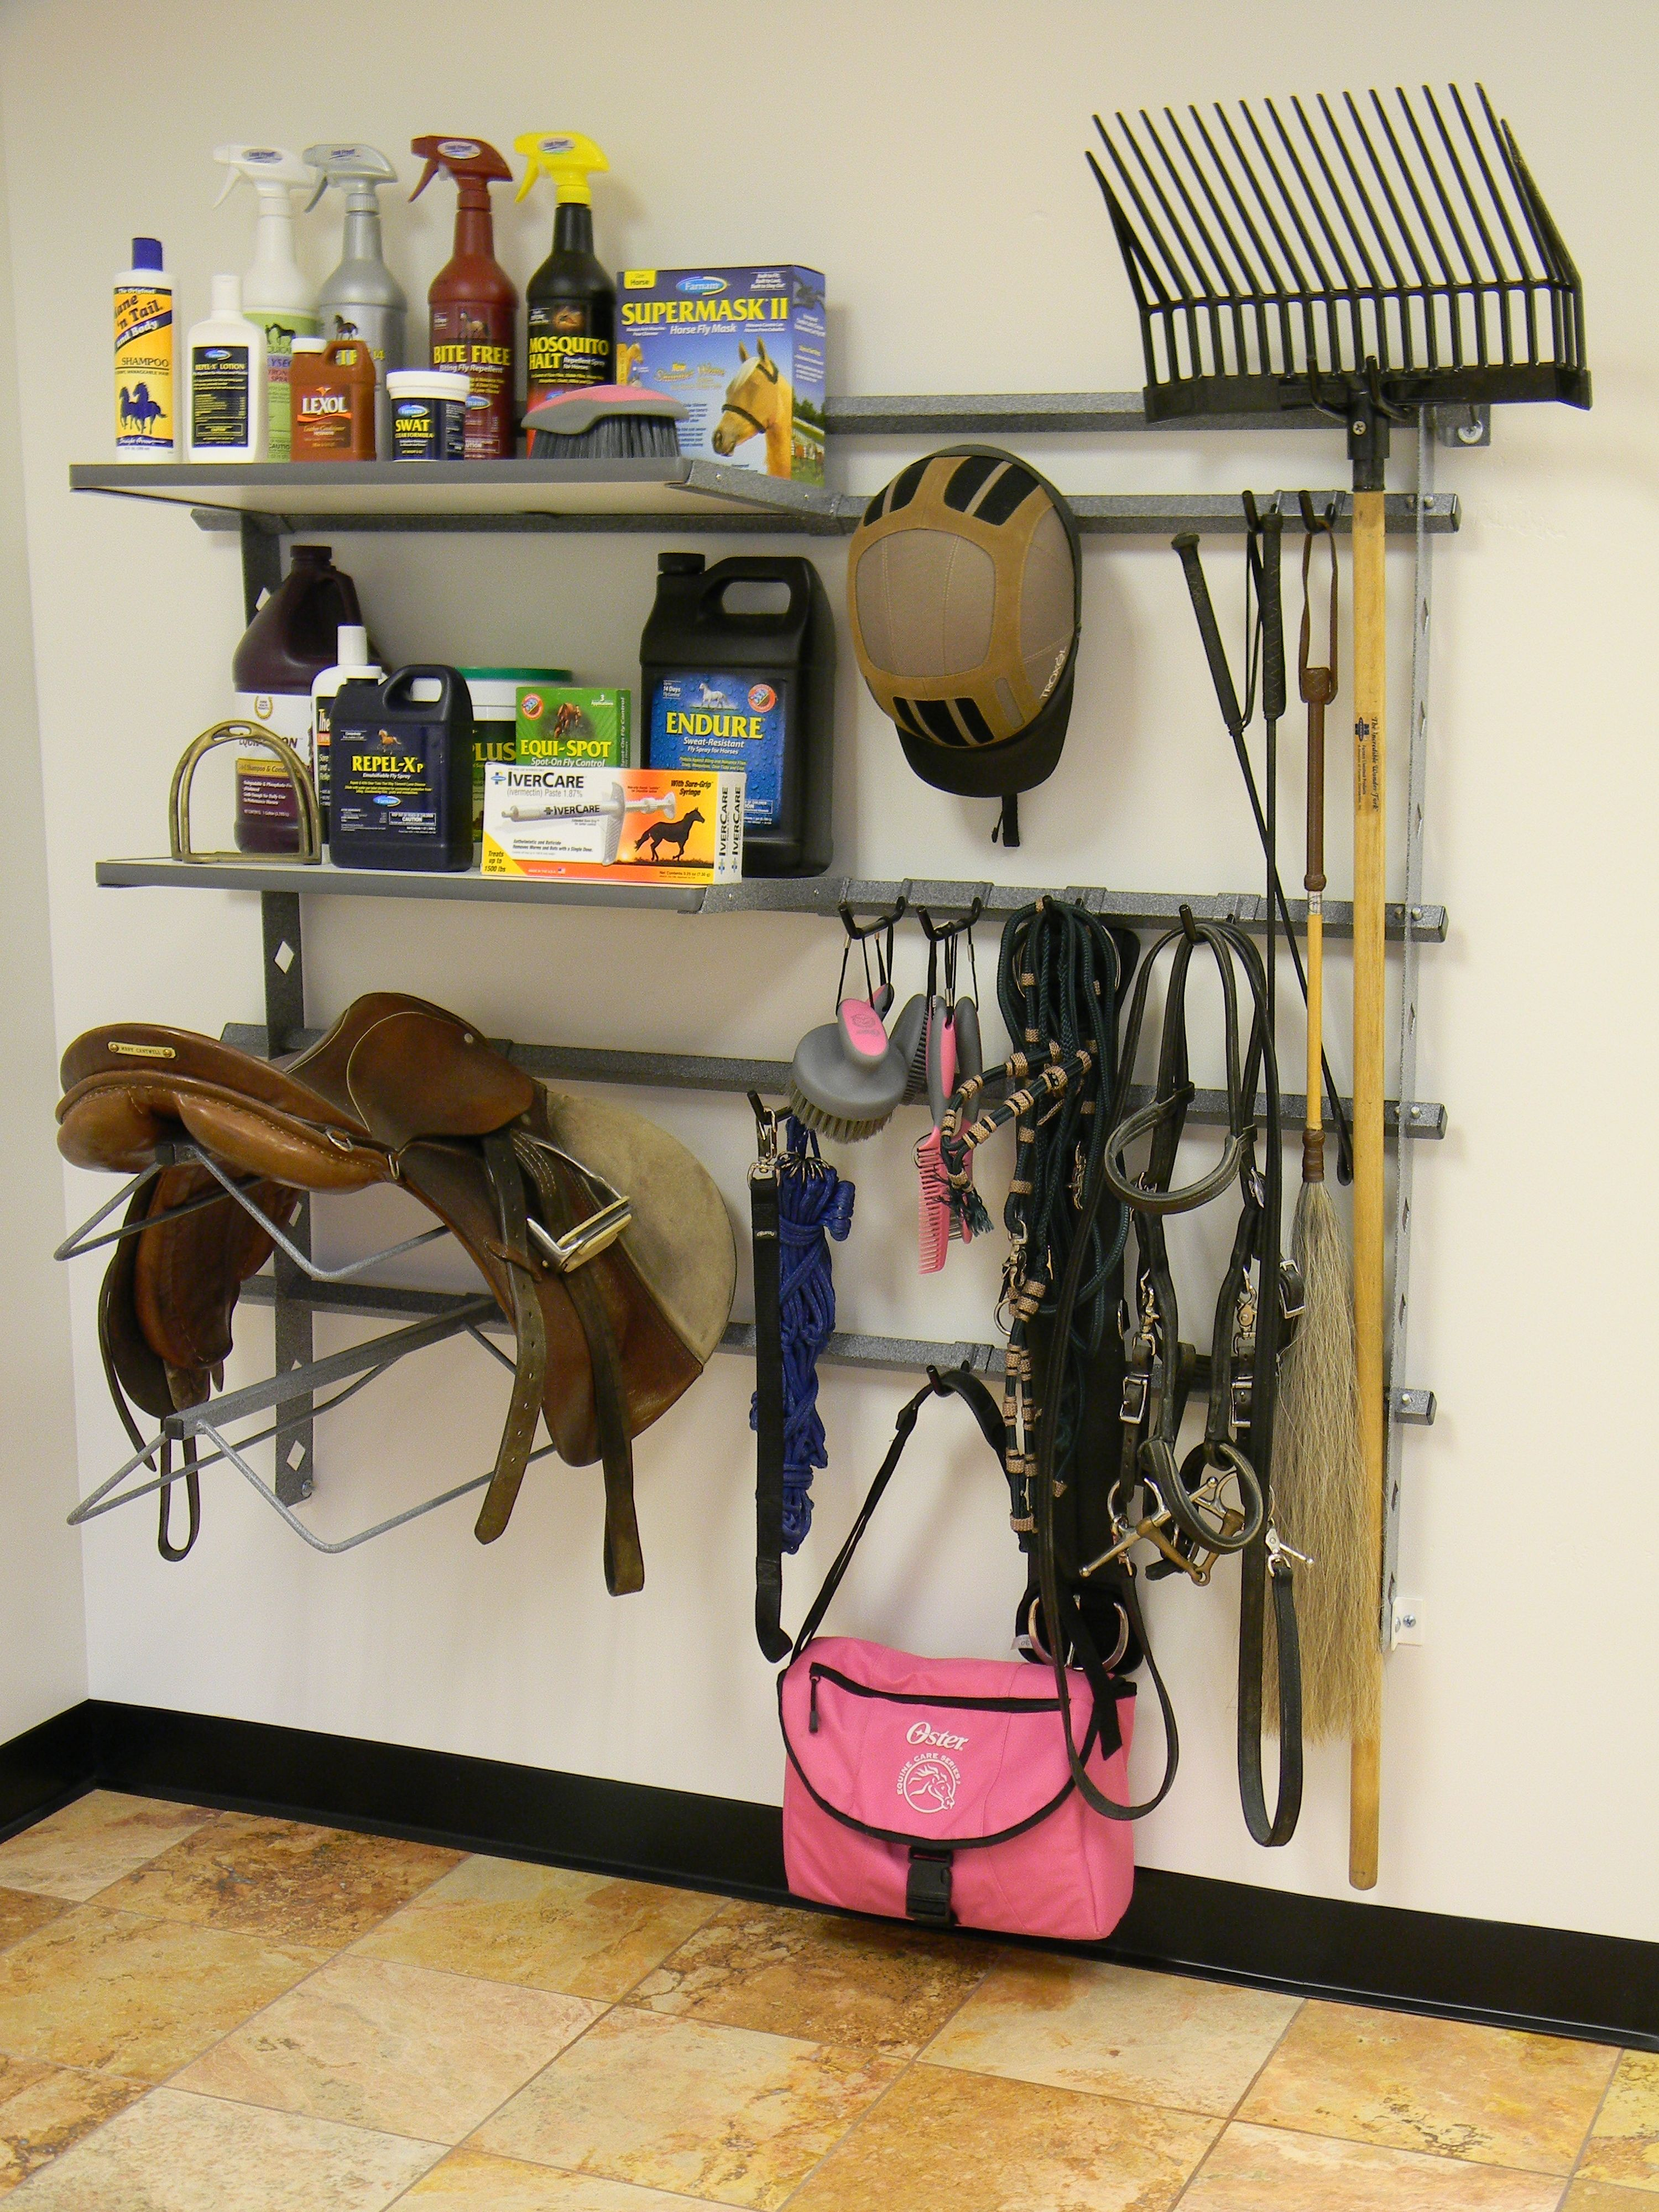 Such a great way to organize all the horse stuff, all in one spot. I love the specailized storage options that Monkey Bar Storage offers.